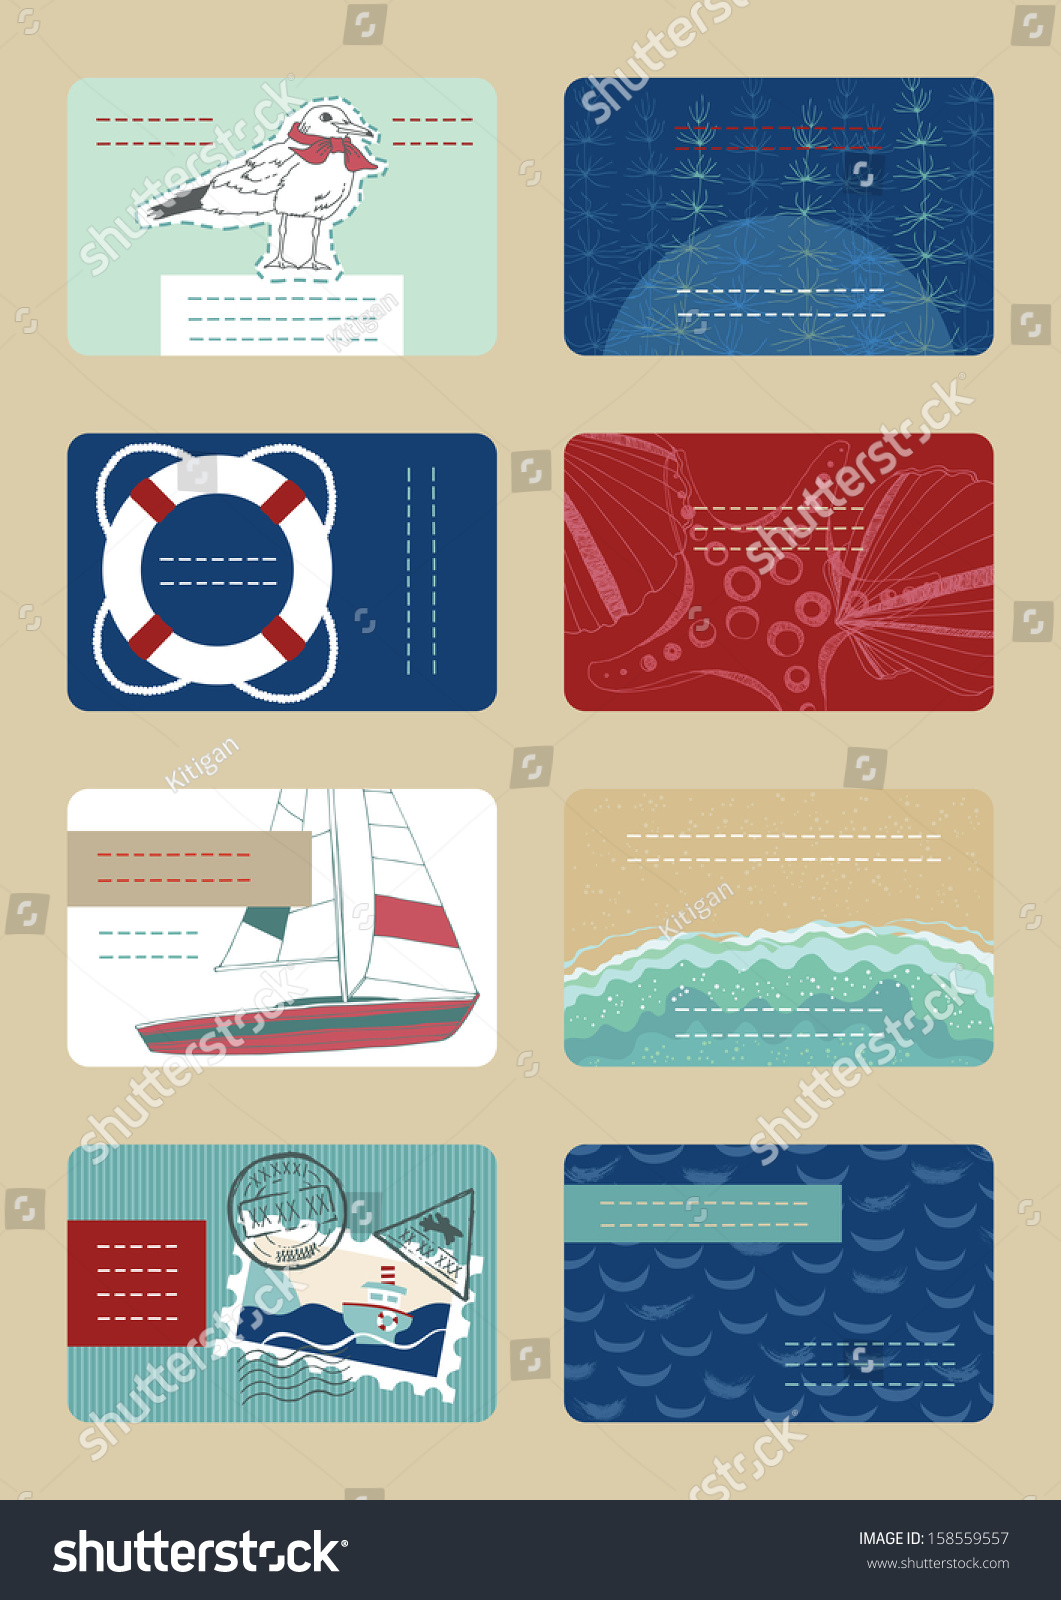 Marine business cards stock vector 158559557 shutterstock marine business cards colourmoves